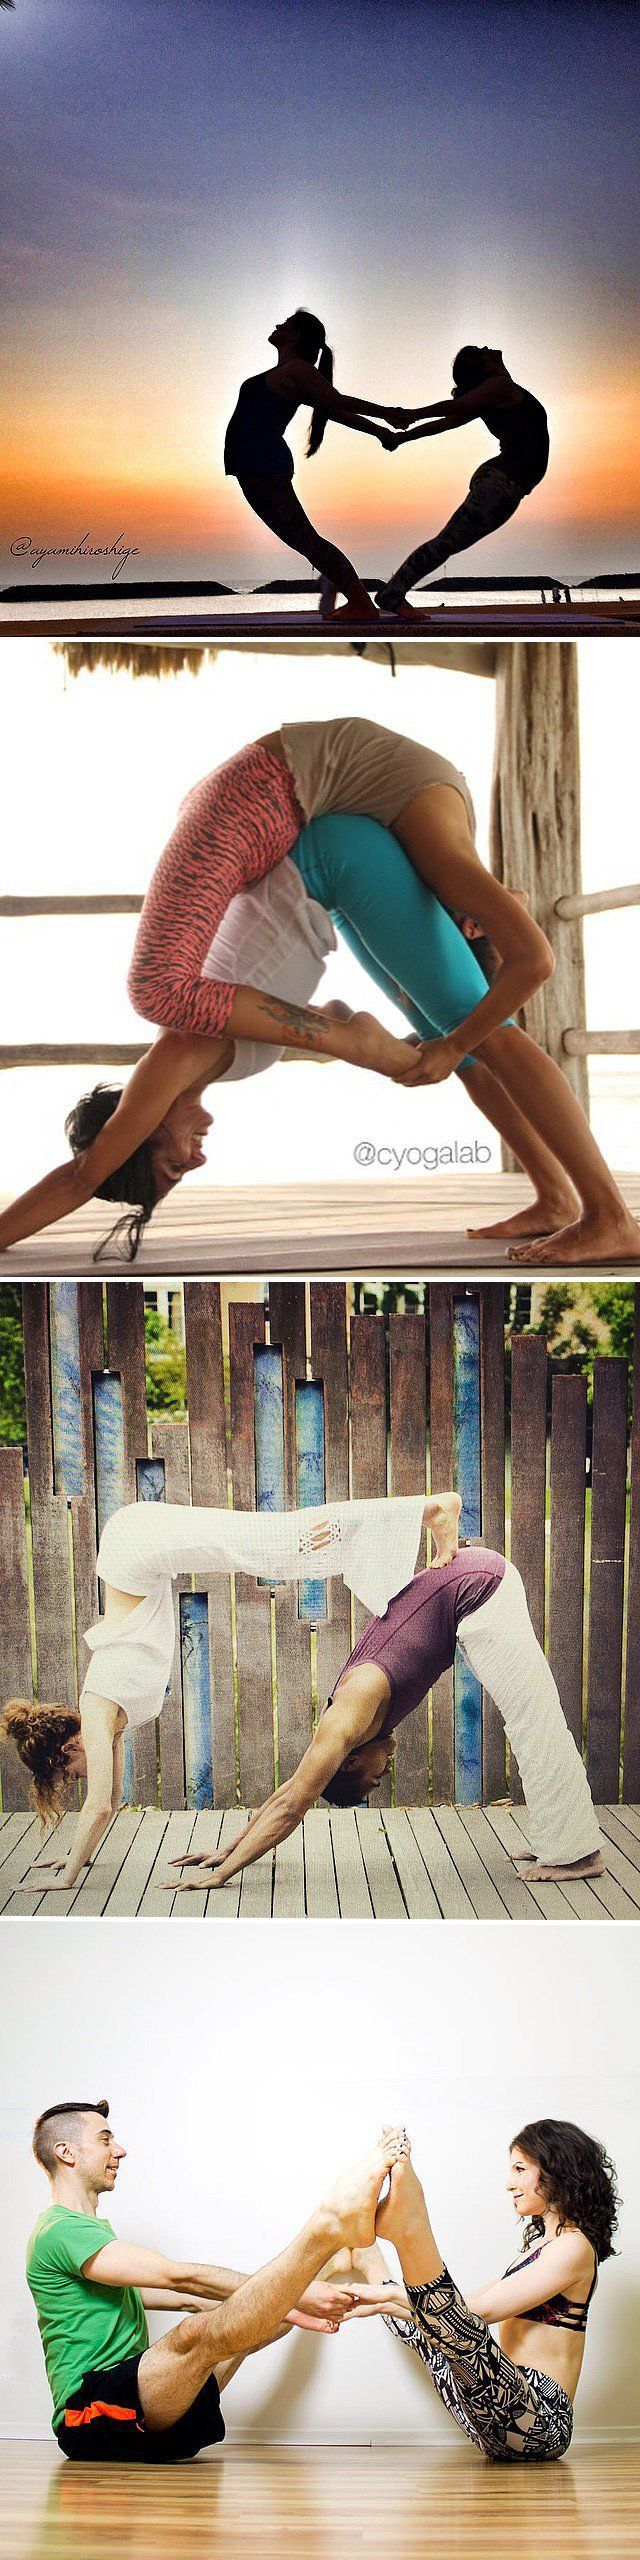 Partner Yoga Poses For Friends and Lovers Forget the chocolate and flowers this Valentine's Day, connect with your favorite person by doing some partner yoga.